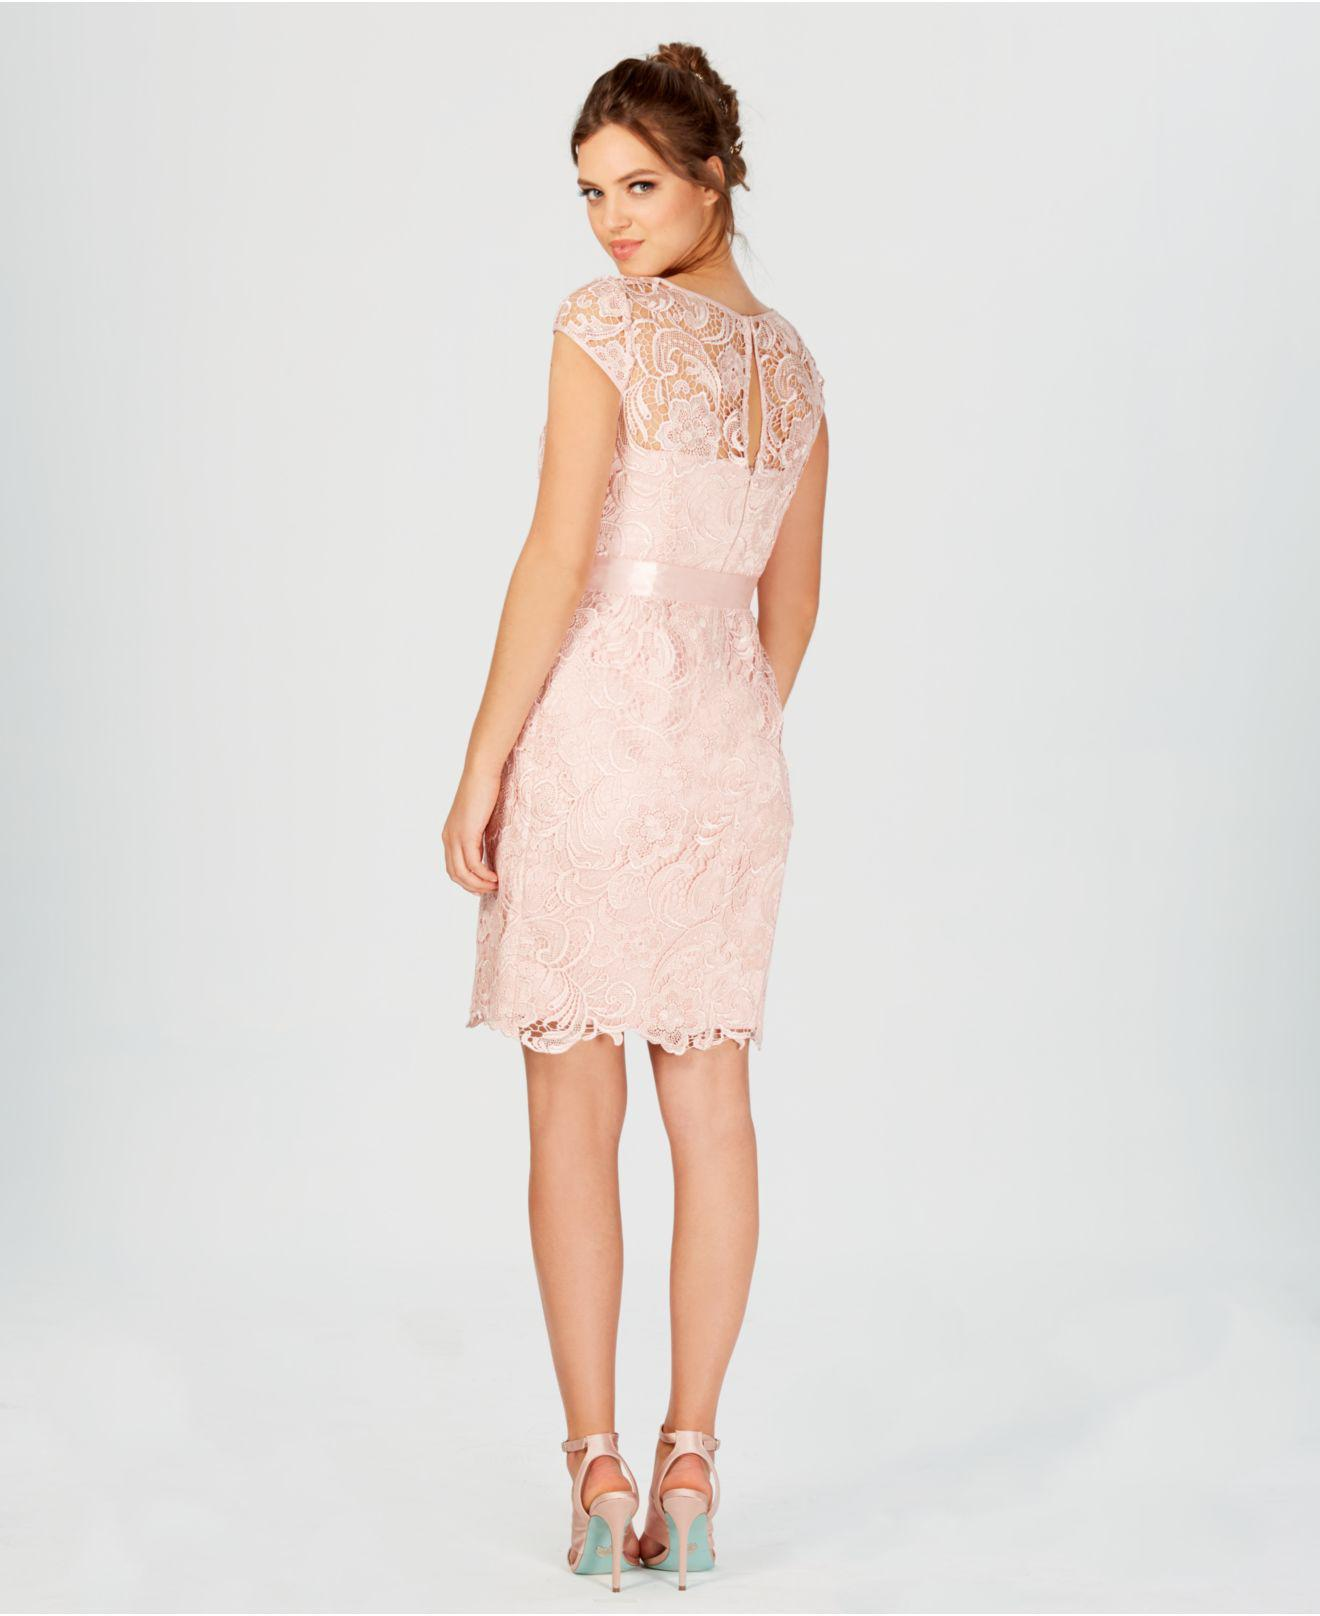 8e6f3638079a Adrianna Papell Cap-sleeve Illusion Lace Sheath in Pink - Save 40 ...